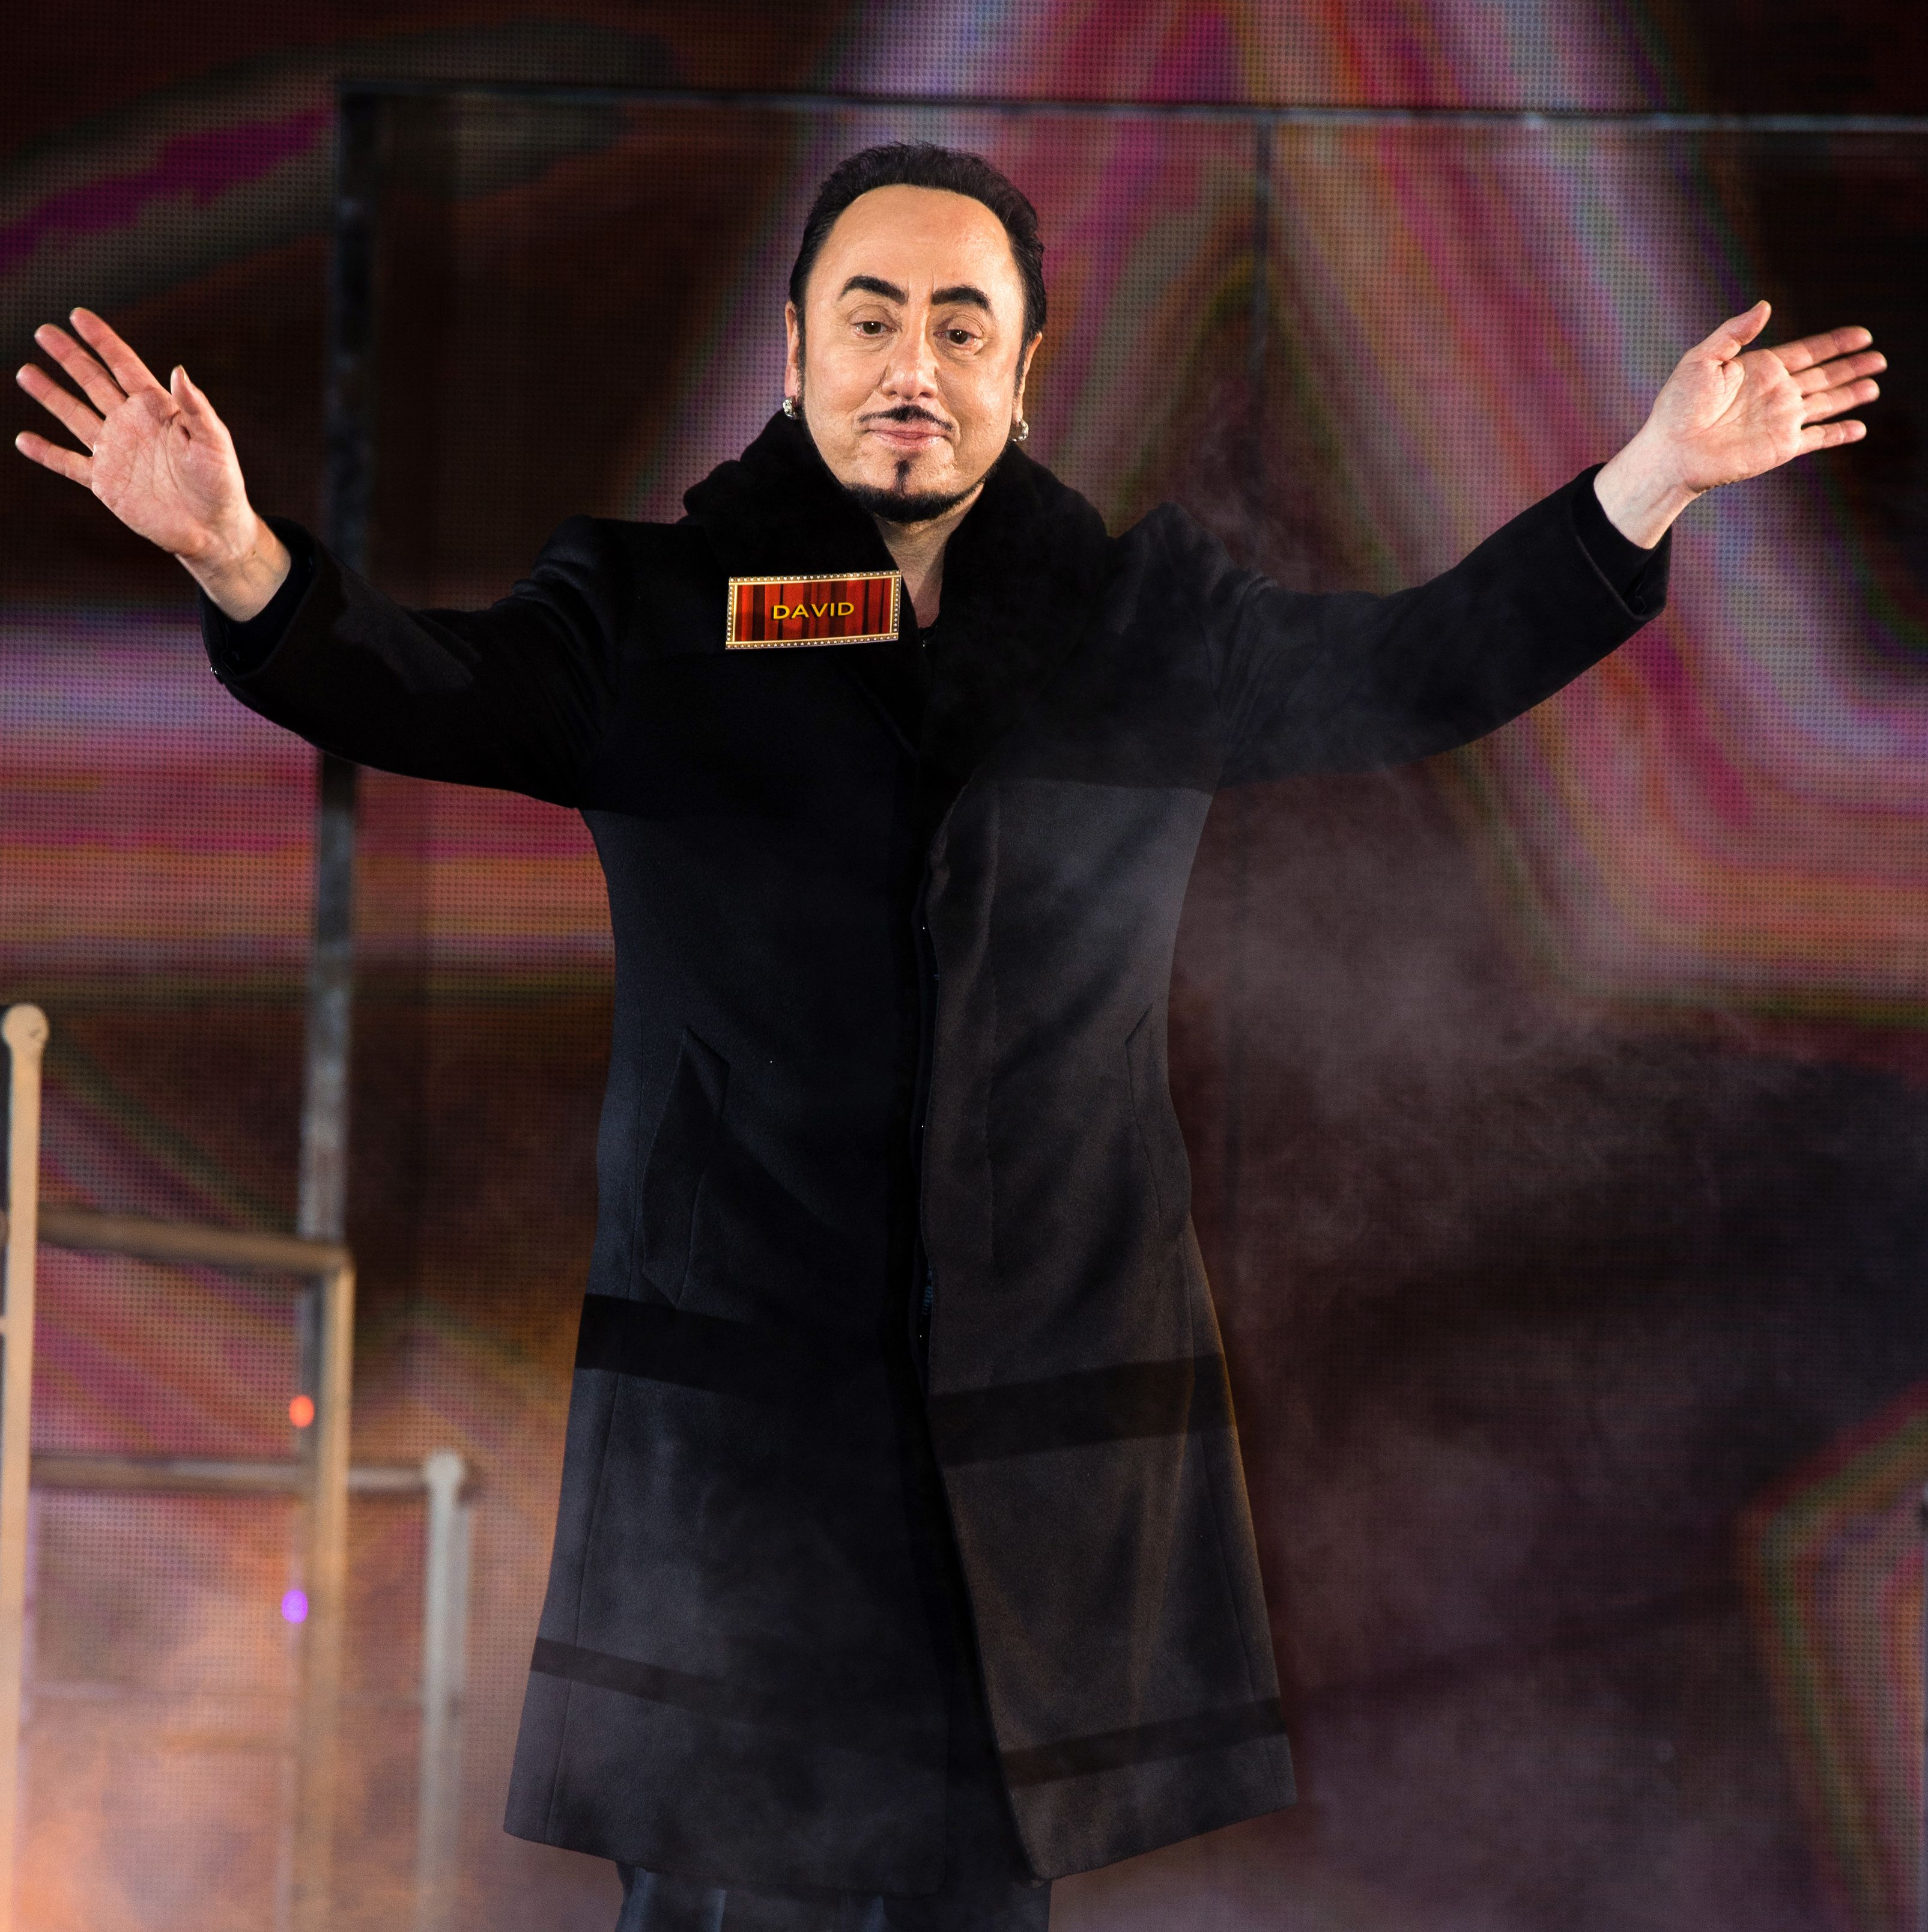 David Gest managed to smuggle a phone into the Celebrity Big Brother house up his bum, according to Lizzie Cundy